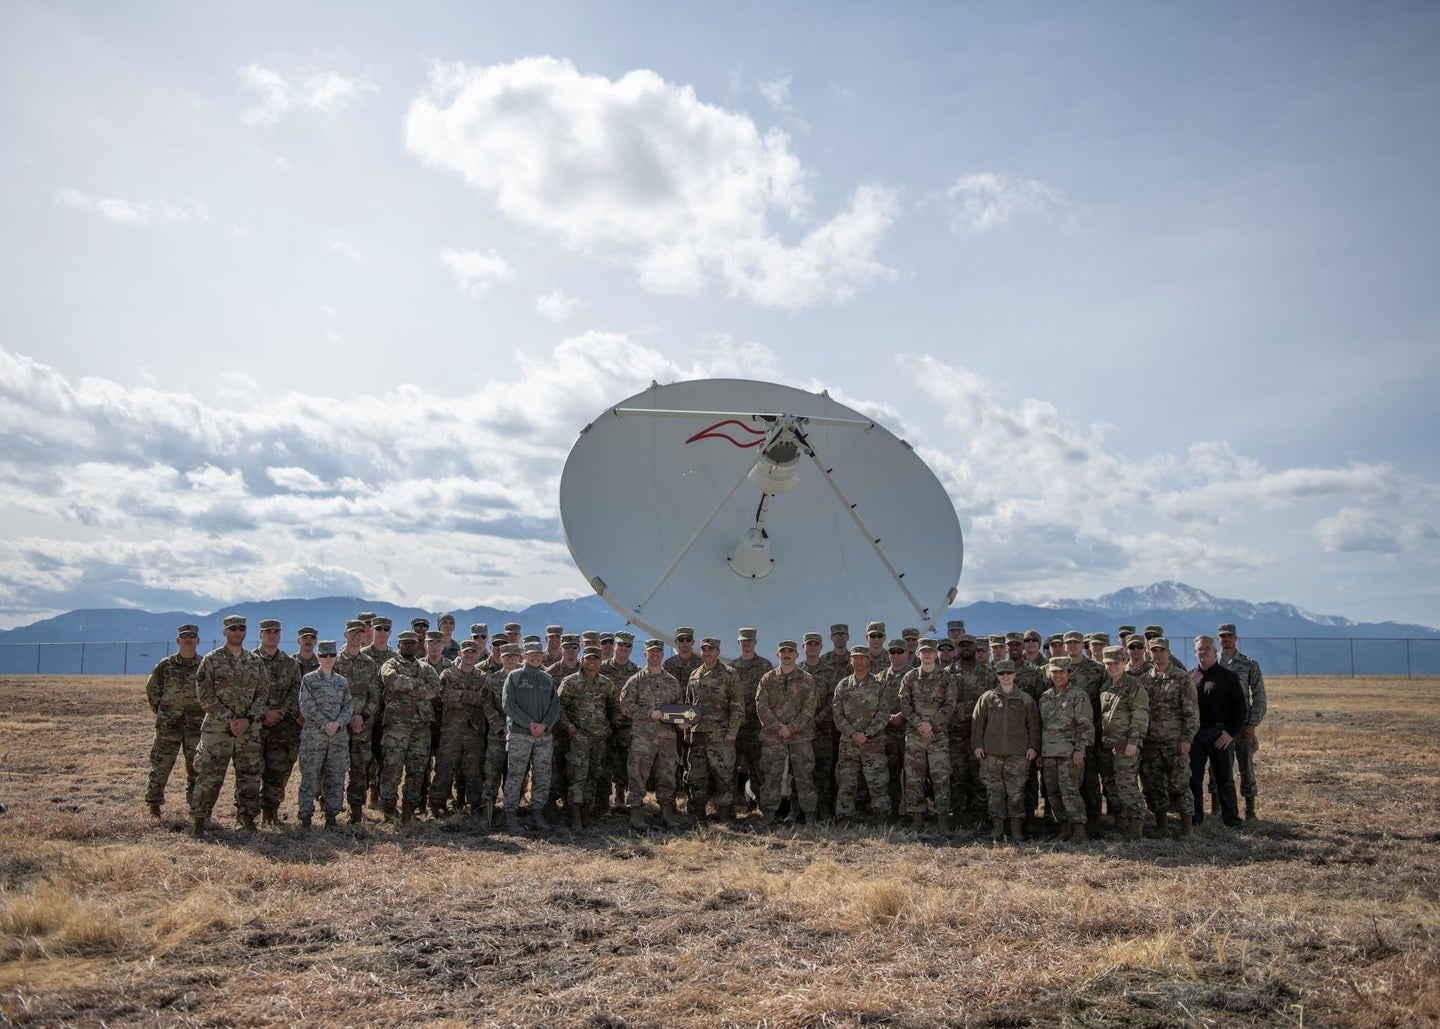 troops stand in front of a satellite dish